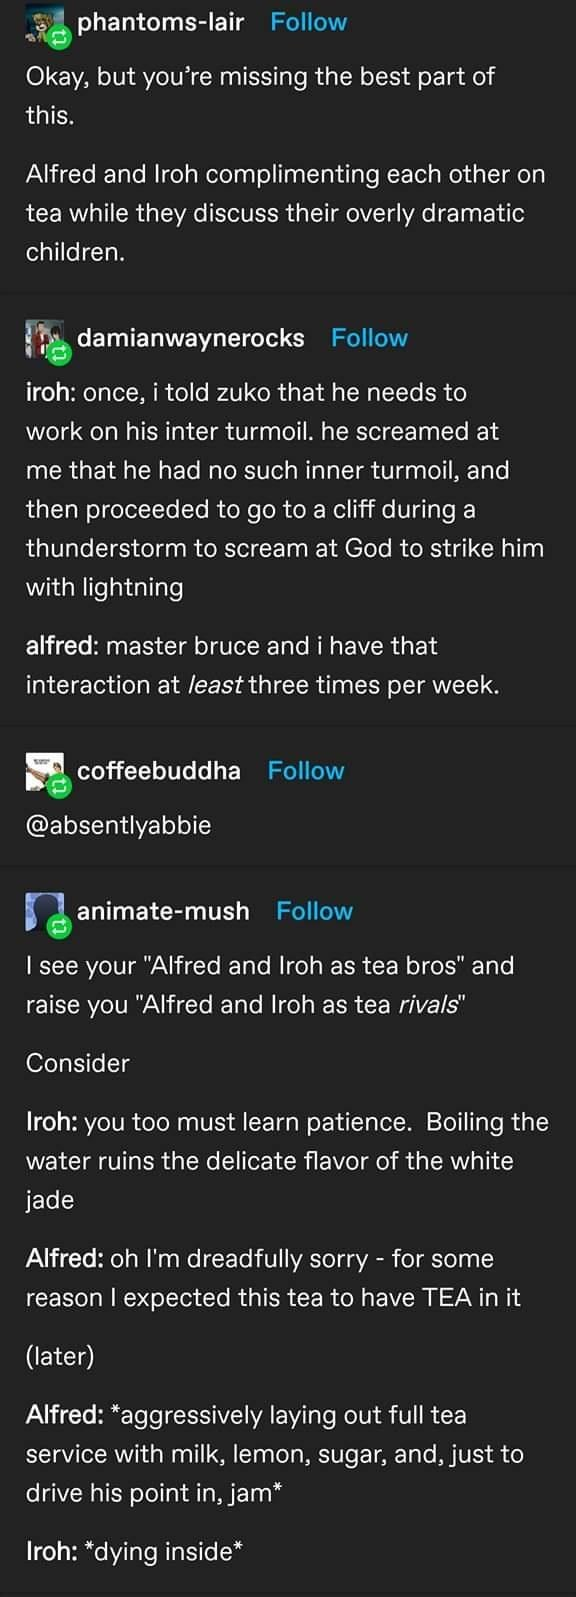 Text - phantoms-lair Follow Okay, but you're missing the best part of this. Alfred and Iroh complimenting each other on tea while they discuss their overly dramatic children. damianwaynerocks Follow iroh: once, i told zuko that he needs to work on his inter turmoil. he screamed at me that he had no such inner turmoil, and then proceeded to go to a cliff during a thunderstorm to scream at God to strike him with lightning alfred: master bruce and i have that interaction at least three times per we